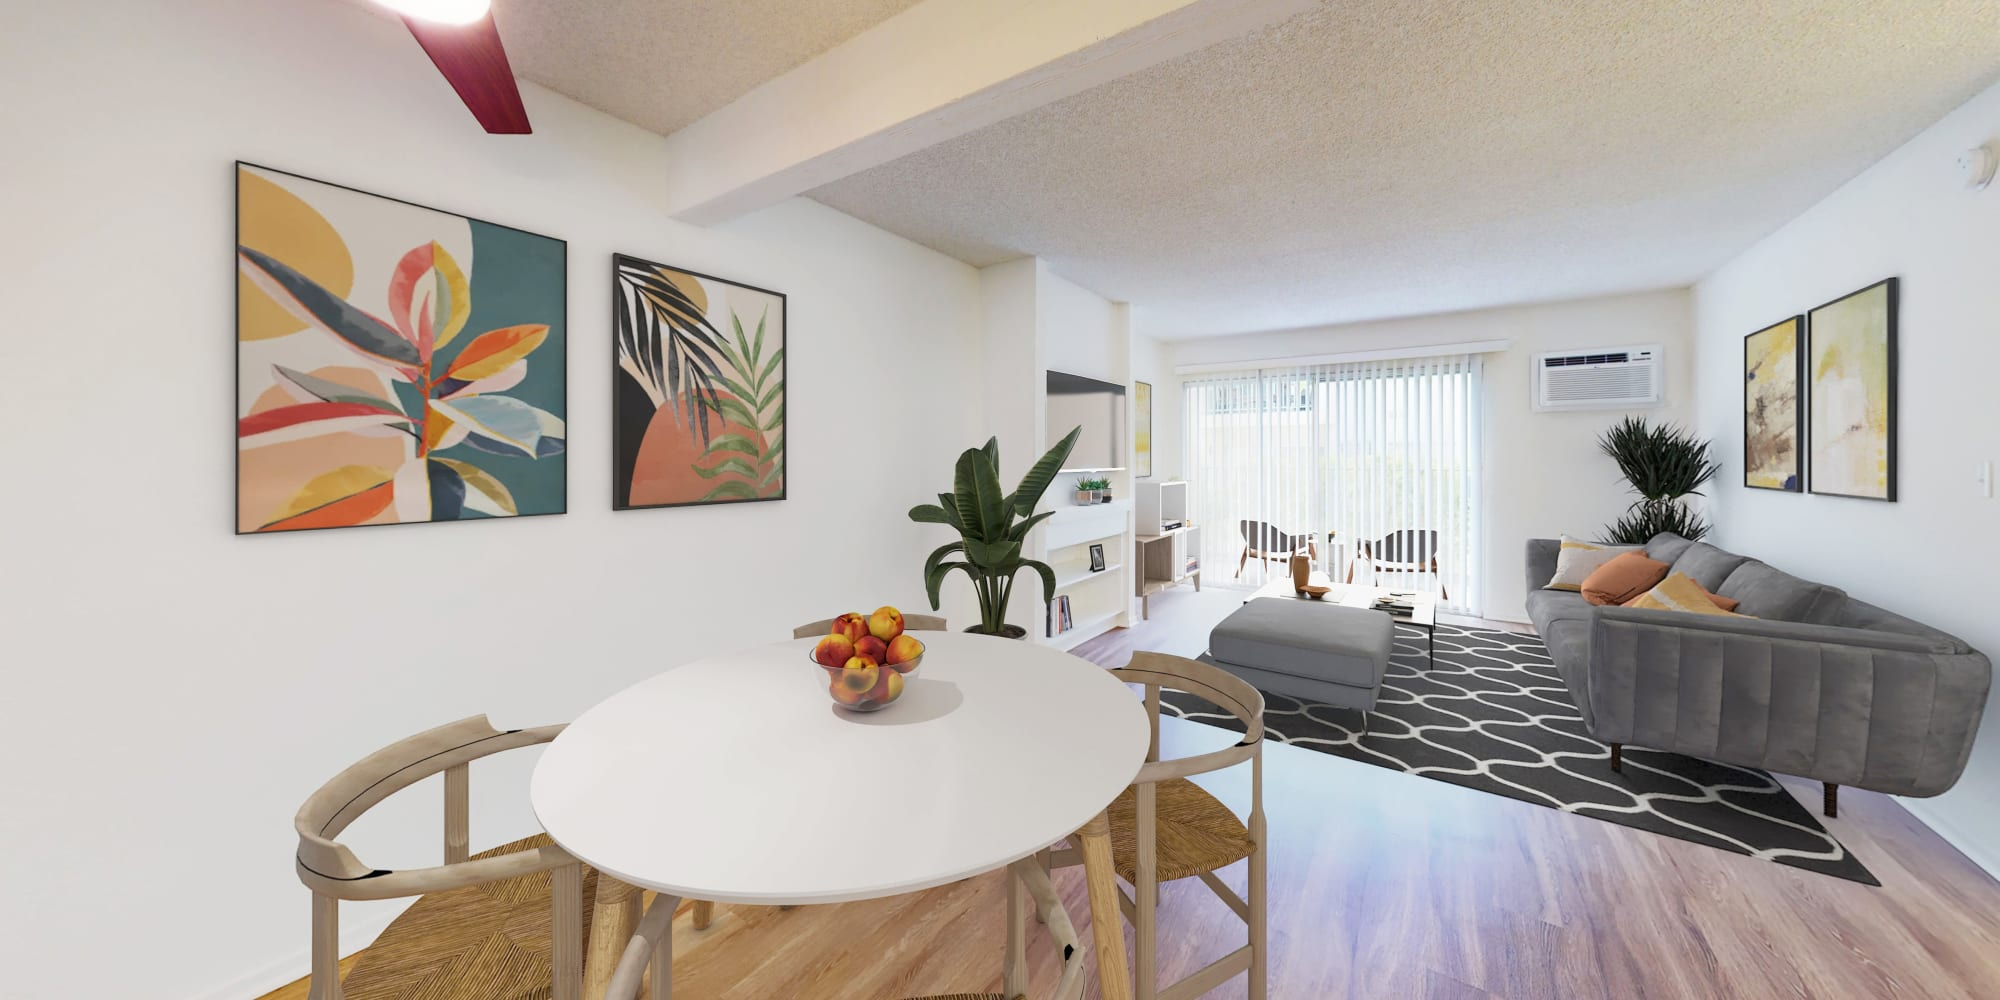 Spacious living areas in a one-bedroom apartment at Village Pointe in Northridge, California